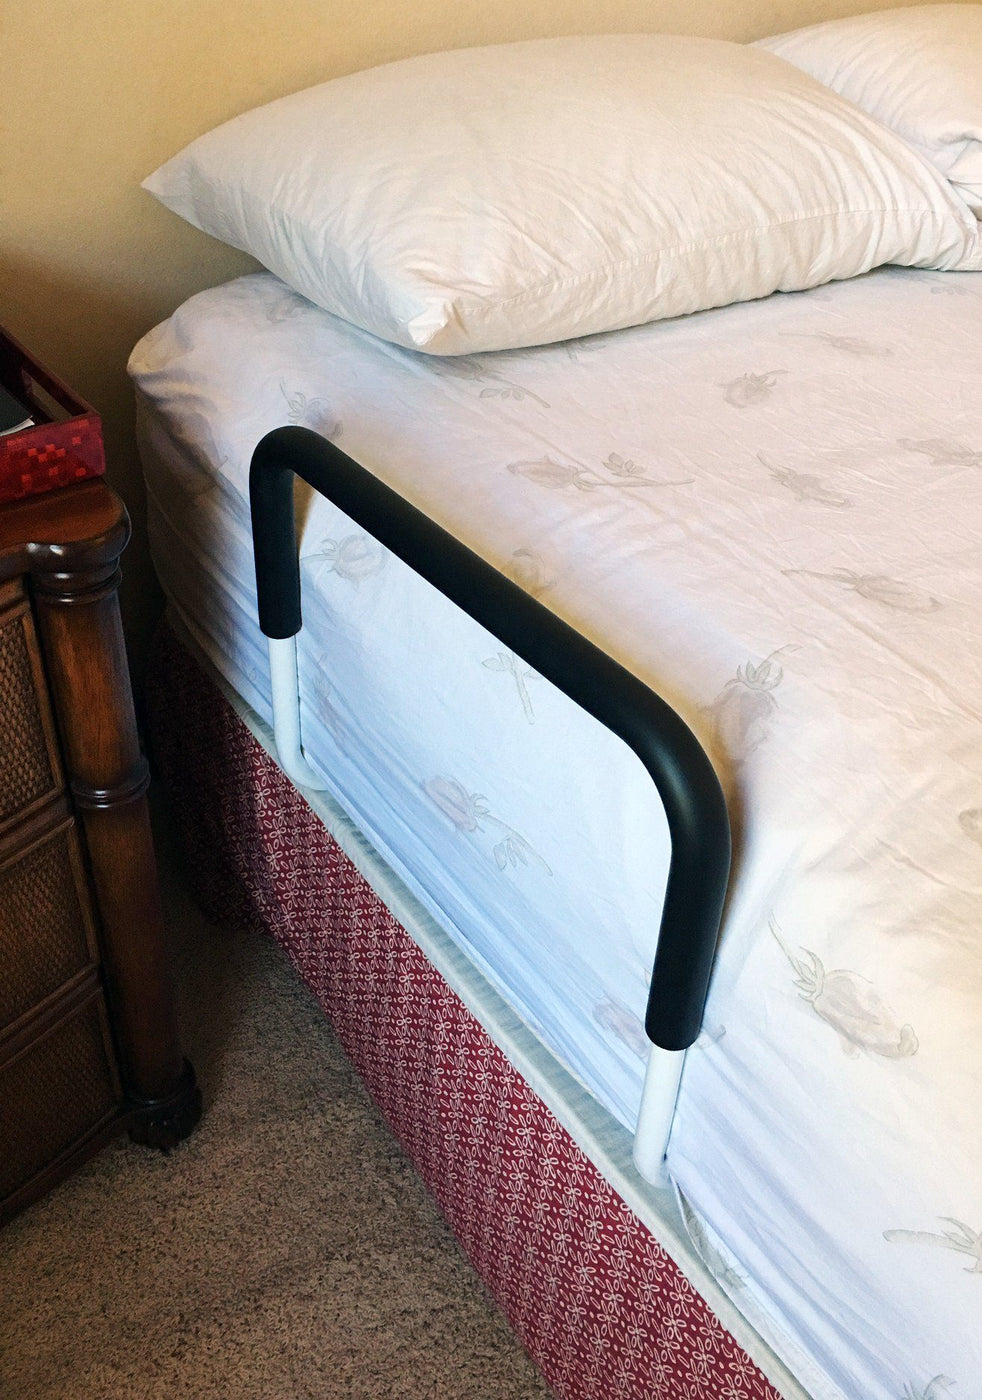 LumaRail Free Stand Bed Assist Rail with IntelliBrite LED Night Light